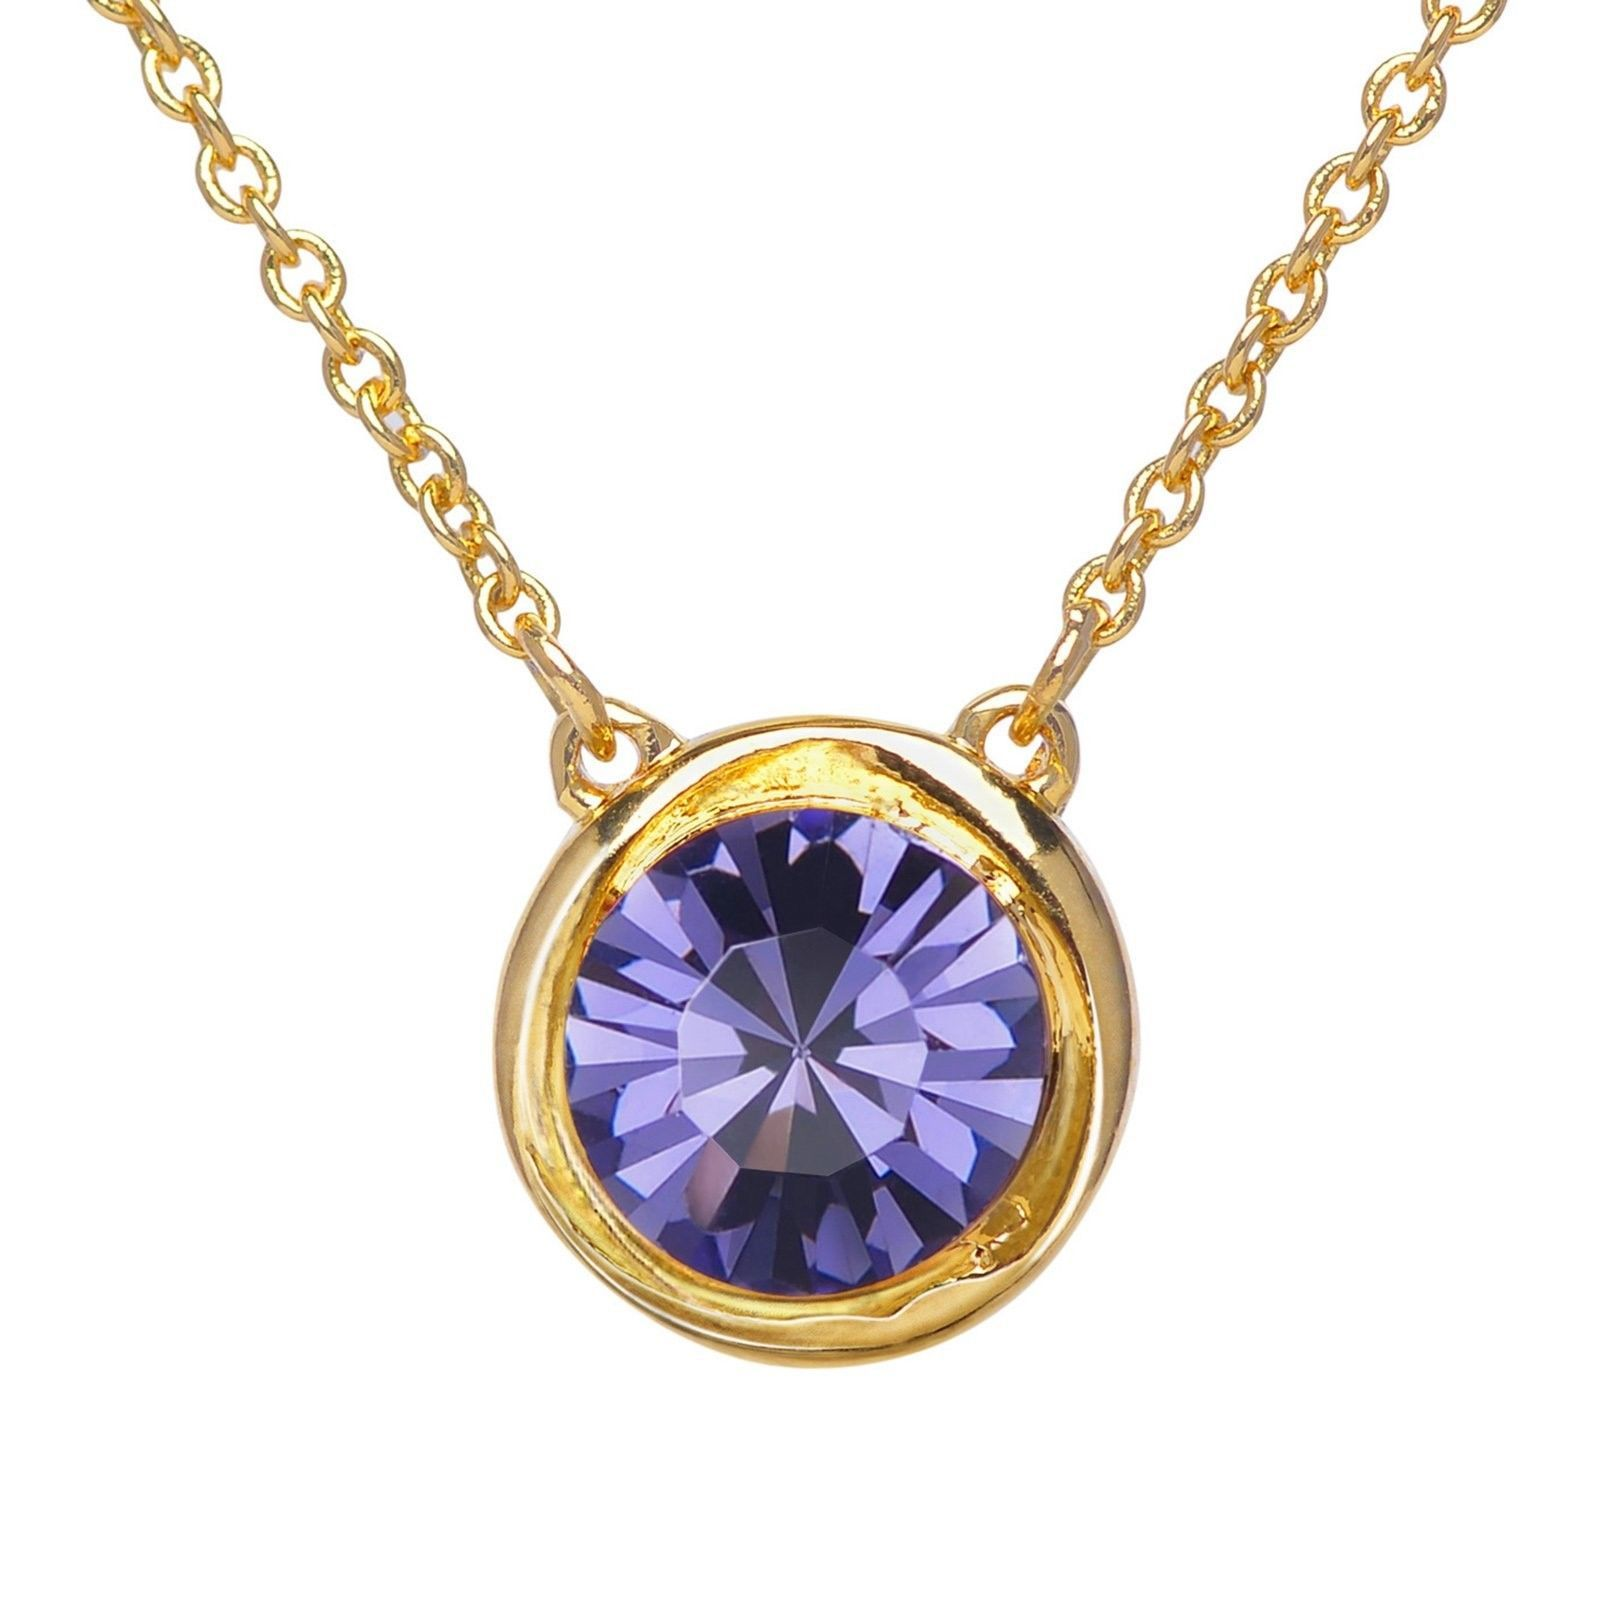 Round Crystal Birthstone Necklace - 18K Gold Plated Chain Jewel